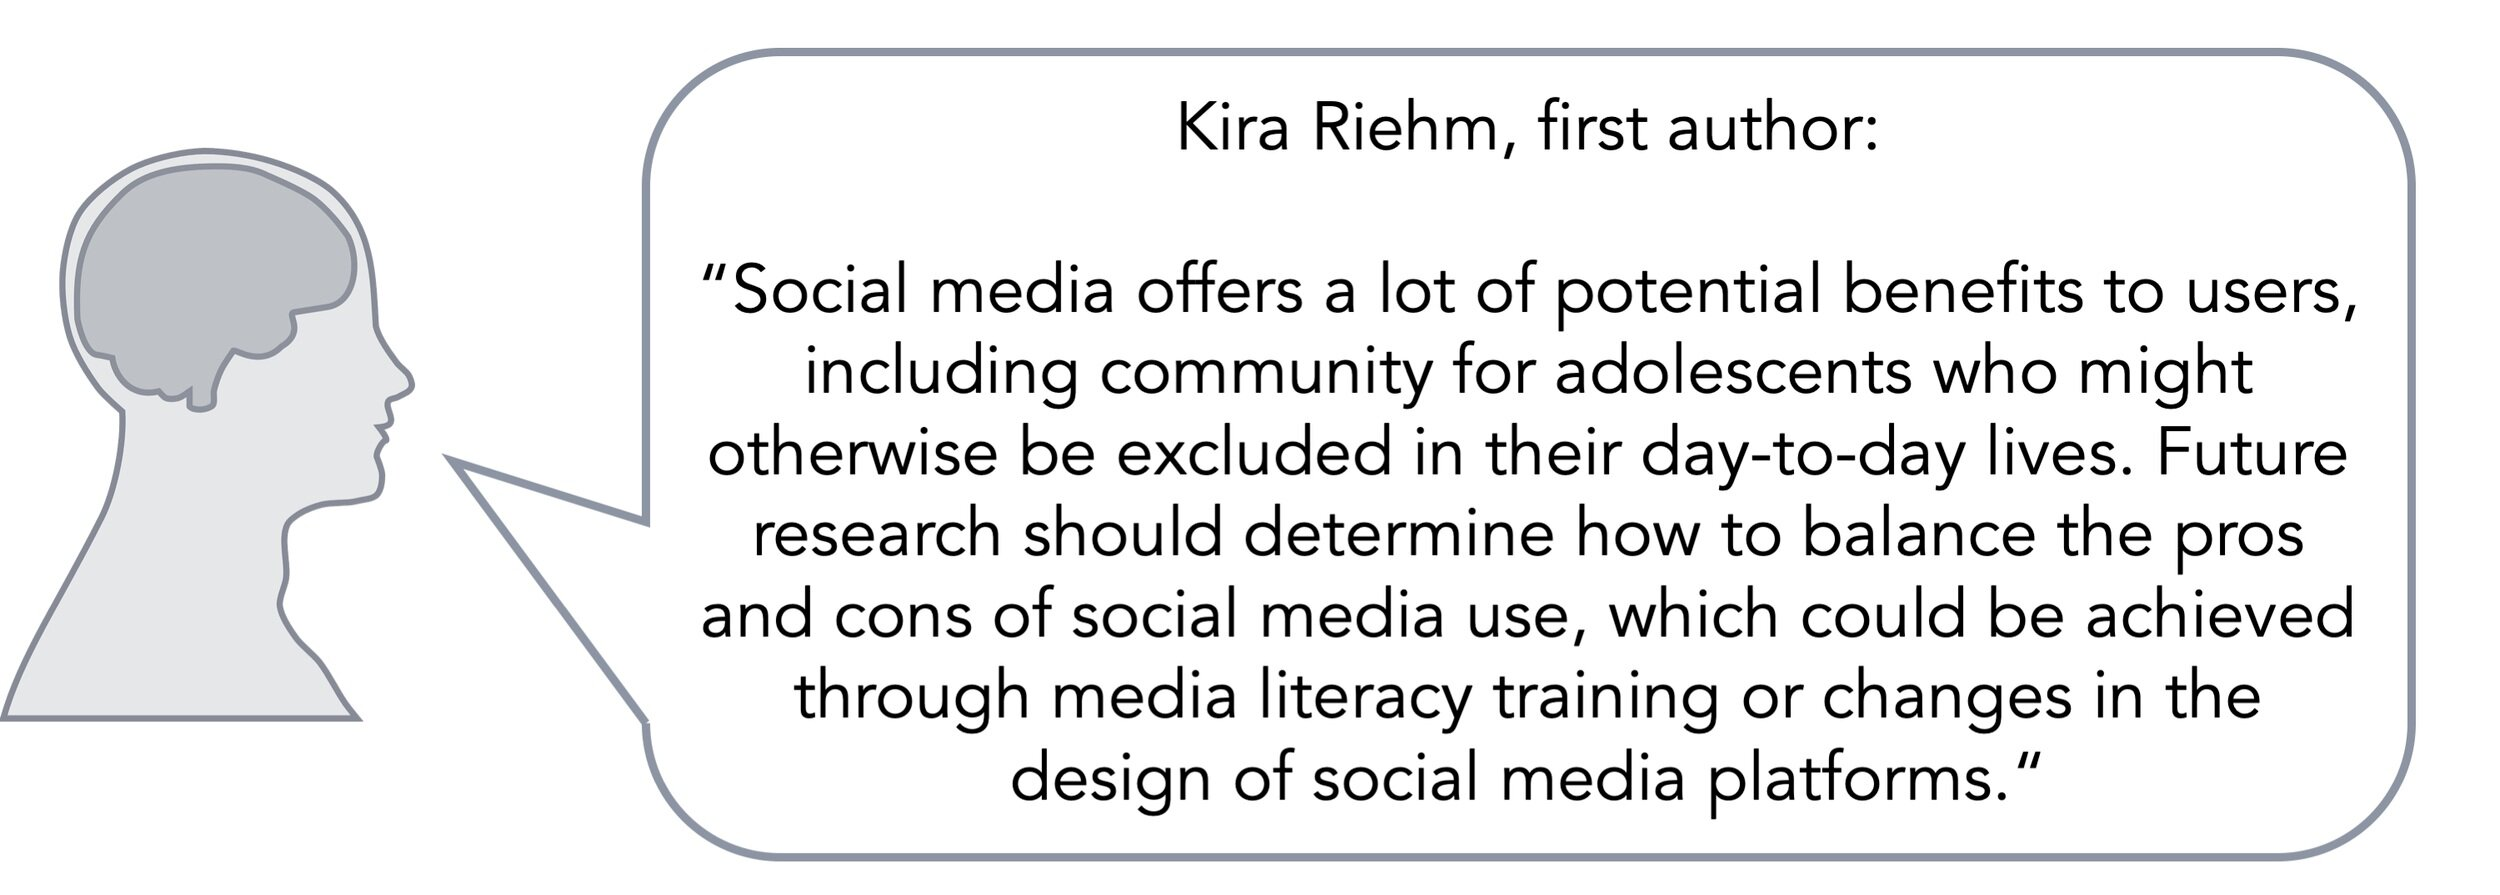 Social Media Use Is Linked To Internalizing Problems In Adolescents Brainpost Easy To Read Summaries Of The Latest Neuroscience Publications